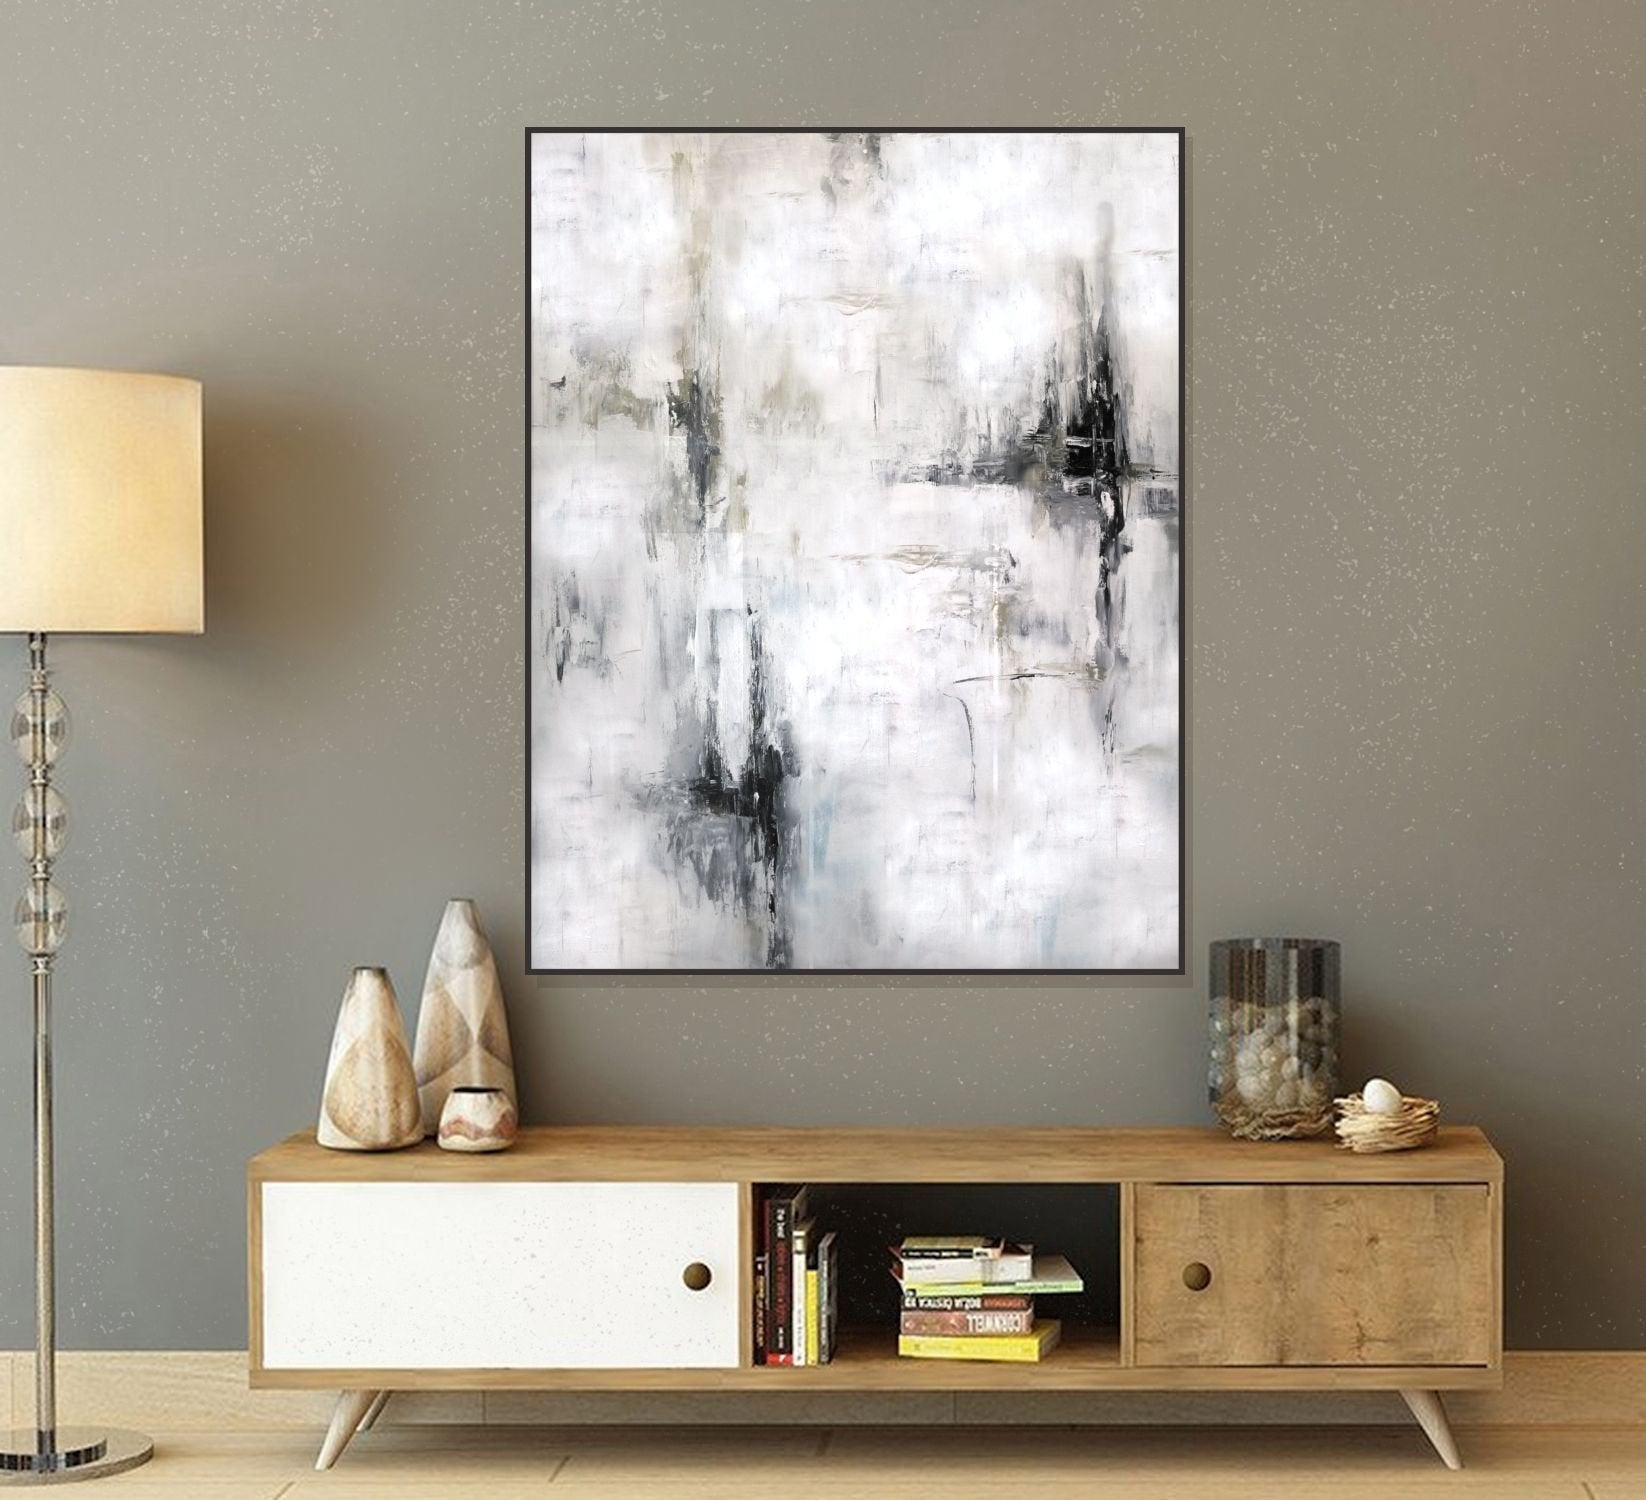 Extra Large Wall Art – Original Abstract Painting – White Artwork Minimalist Landscape – Modern Industrial Wall Decor White Abstract Art Intended For Large Modern Industrial Wall Decor (View 3 of 30)